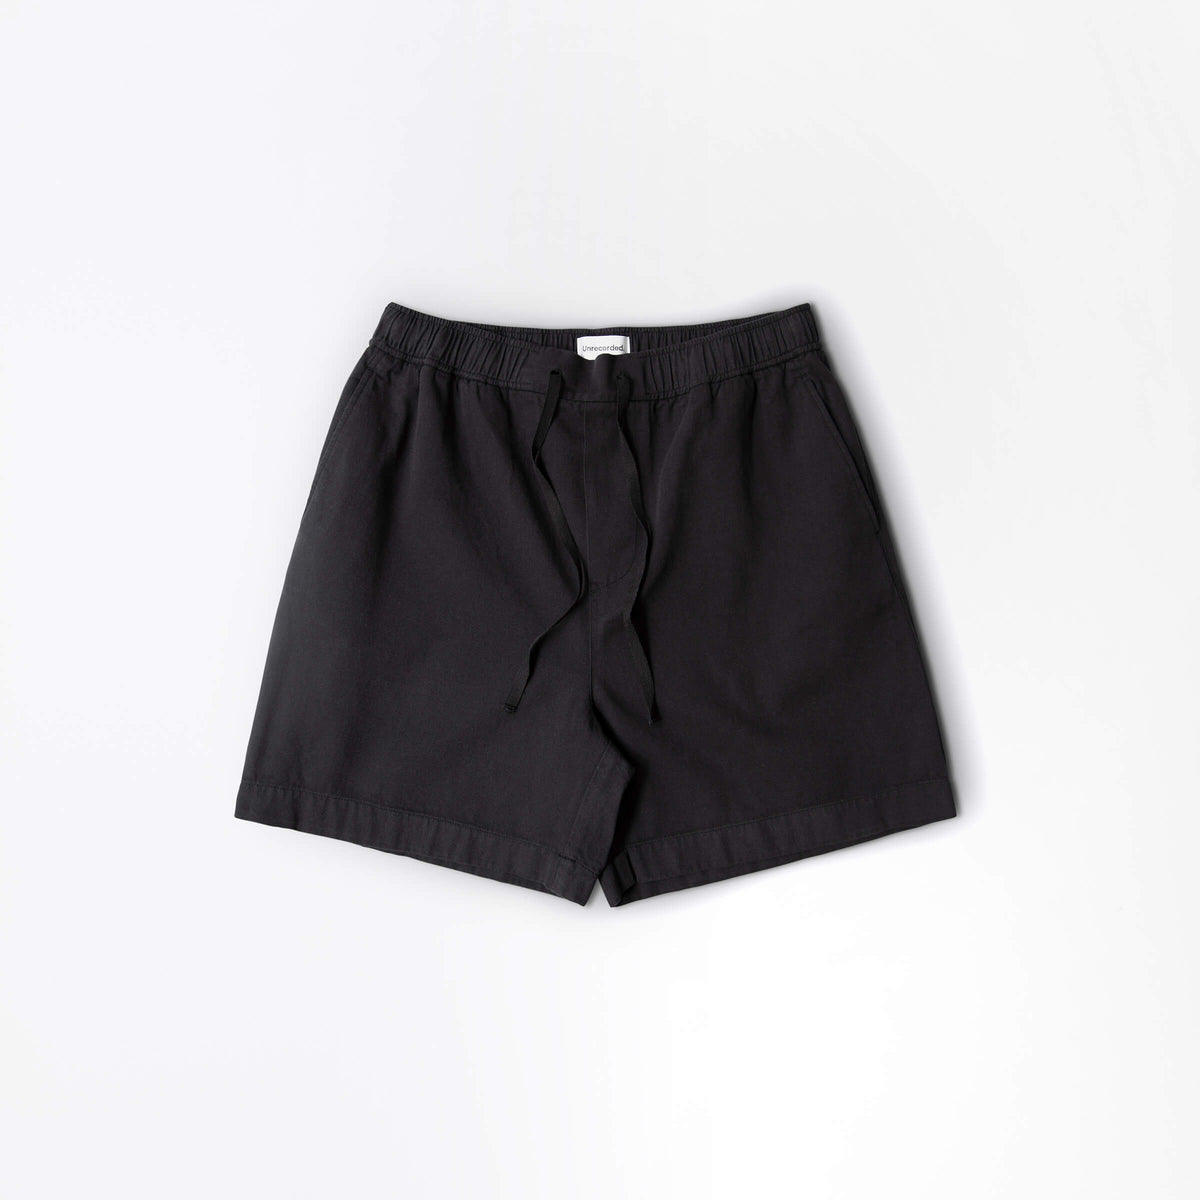 Sweatpant Short in Black made from organic cotton - Alternate